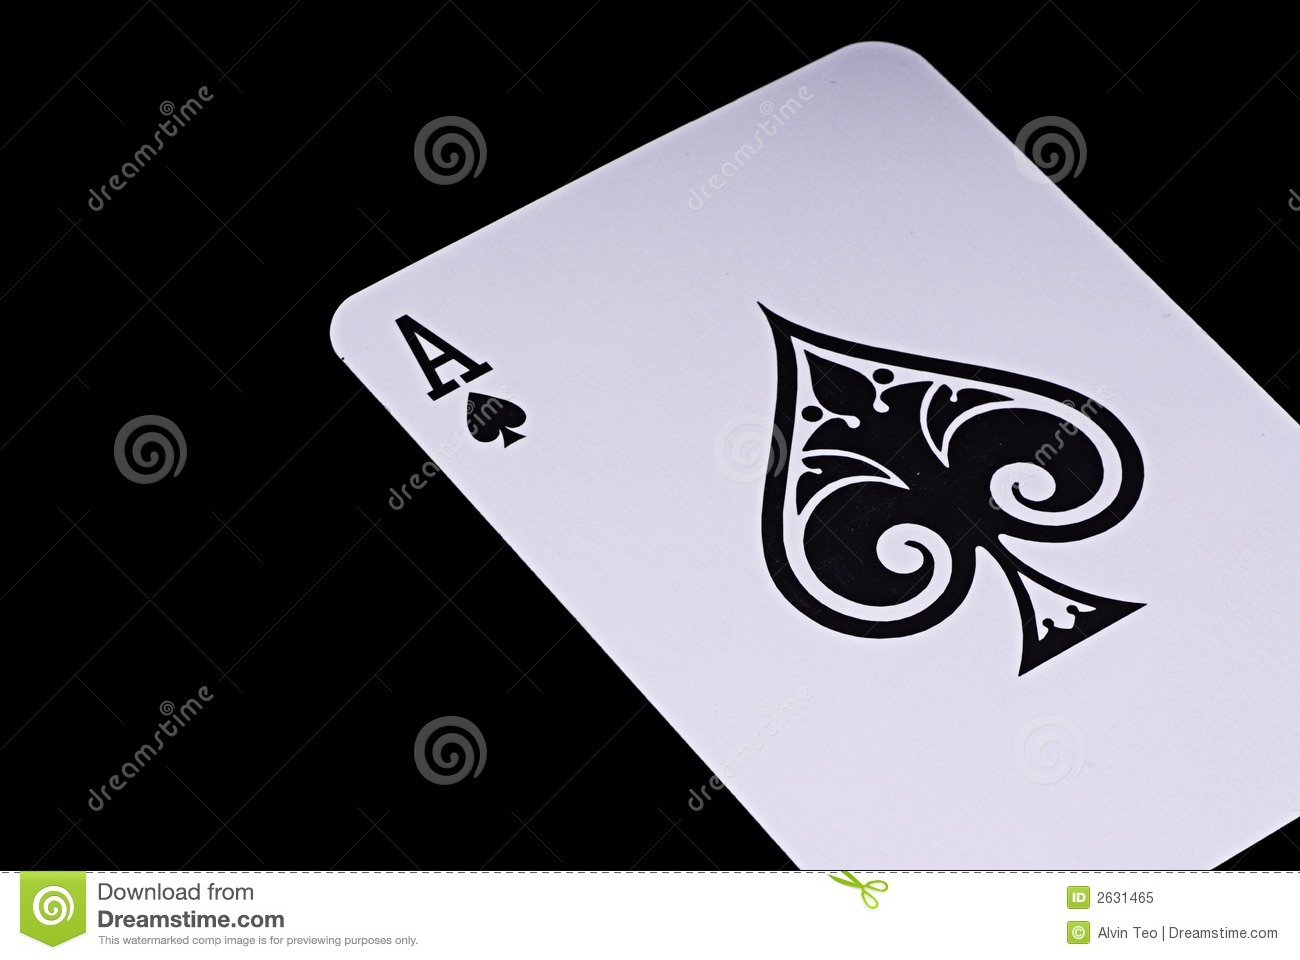 No Credit Check Credit Cards >> Poker Card Royalty Free Stock Photo - Image: 2631465